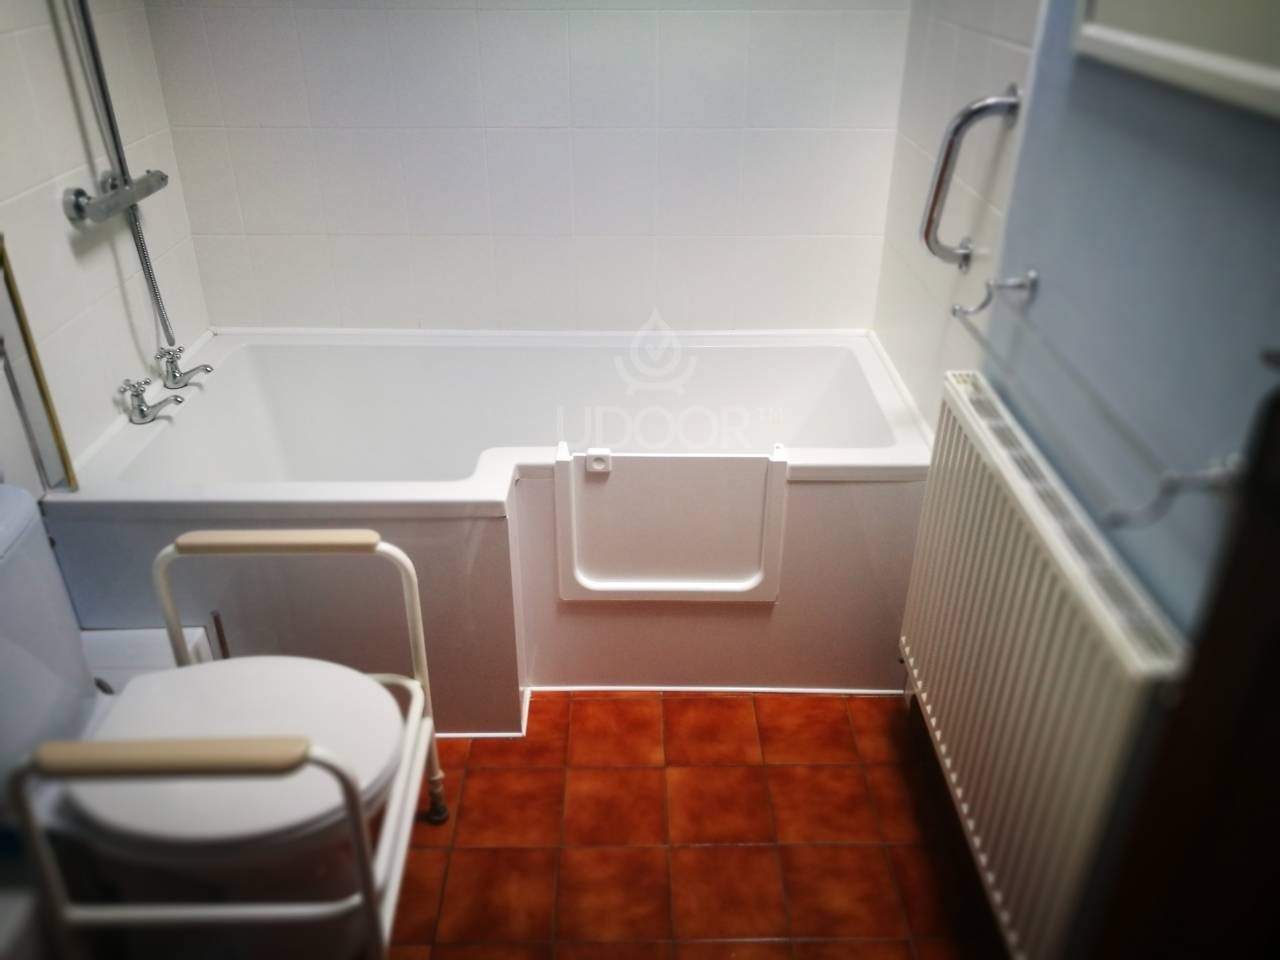 Bathtub With Plastic Or Wooden Front Panel Udoor